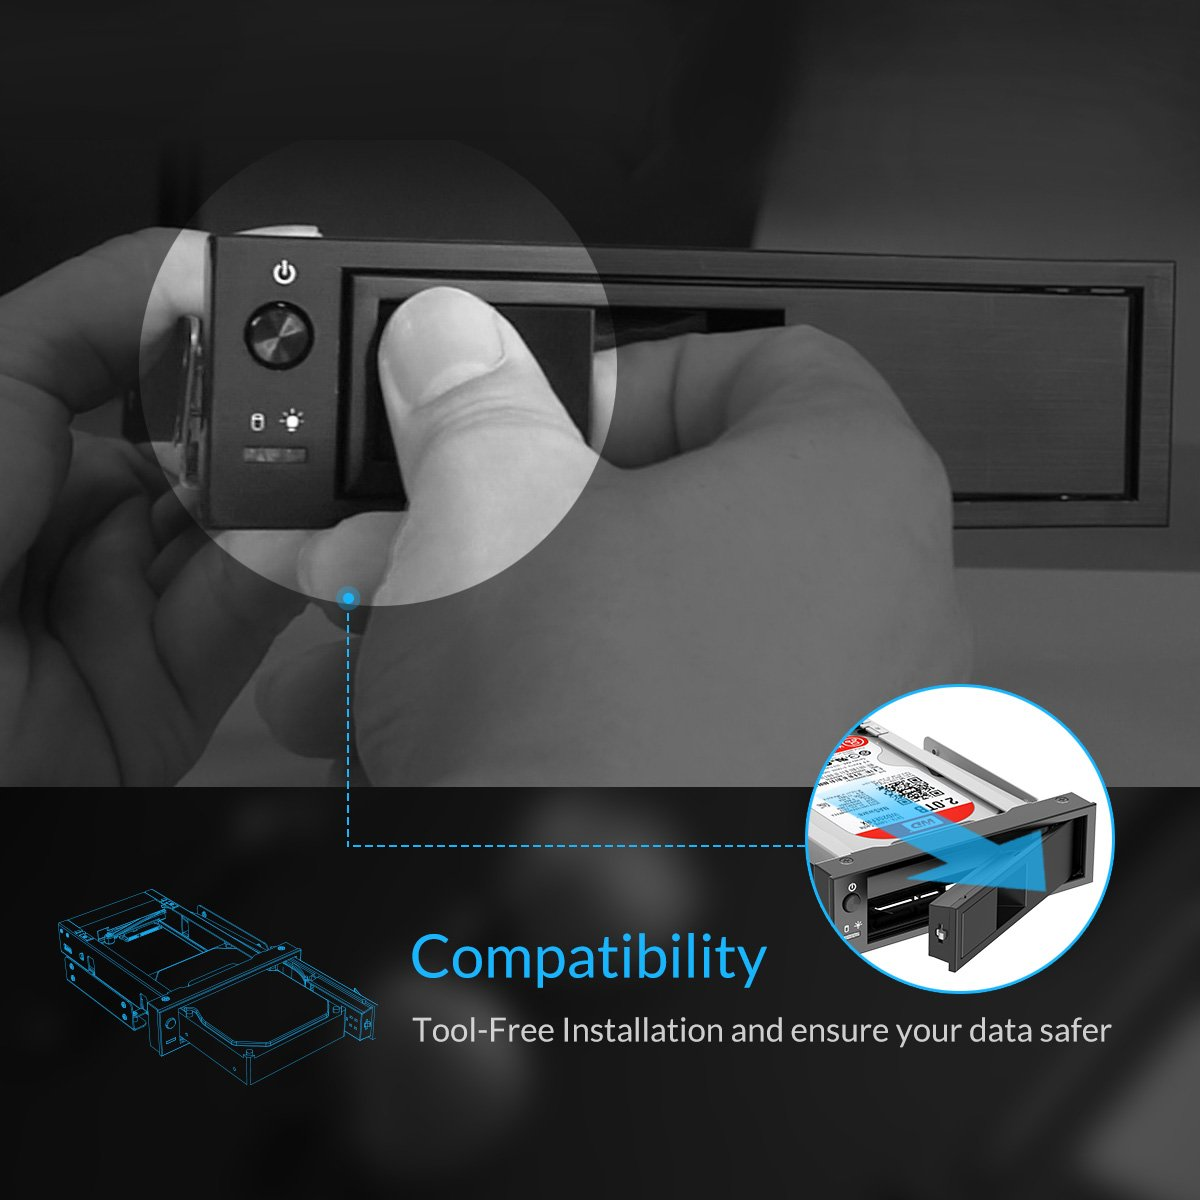 Orico 1106ss 525 Trayless Hot Swap Mobile Rack Cd Rom 3569s3 35 Inch Hdd Sata30 Tool Free Hard Drive Enclosure Internal Sata Ssd Adapter Black Computers Accessories